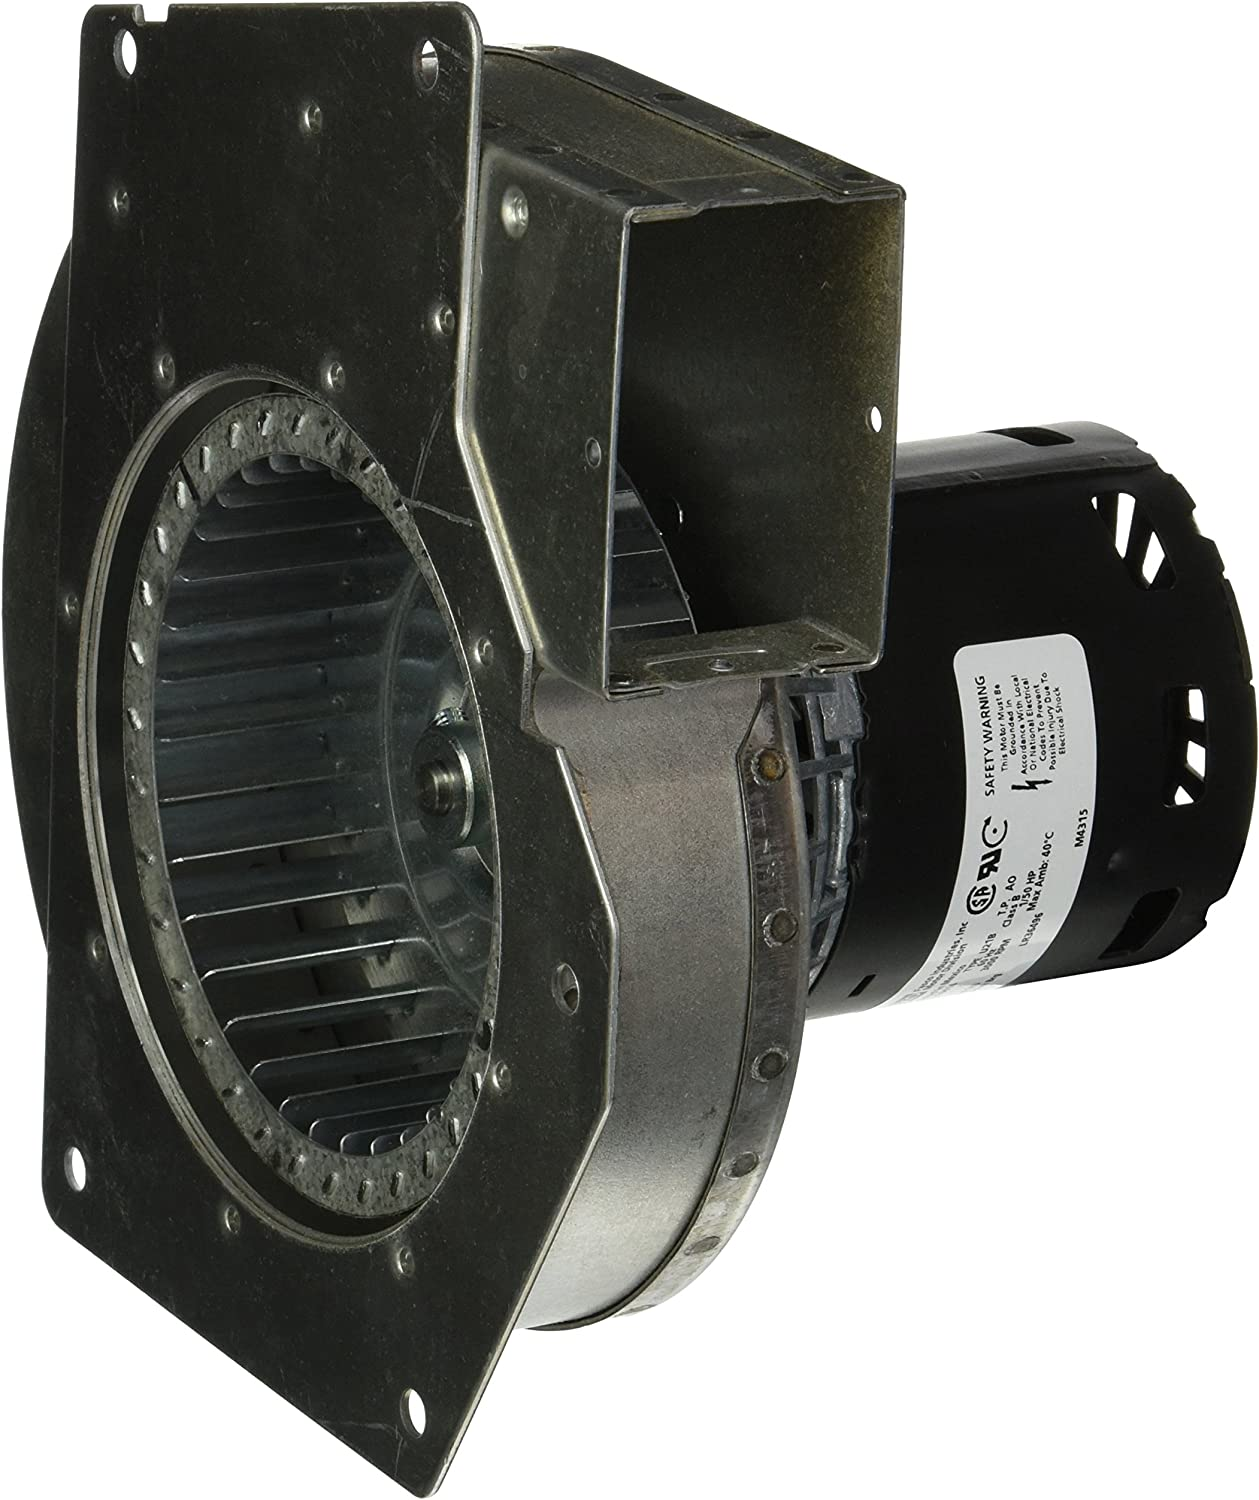 """Fasco A143 3.3"""" Frame Shaded Pole OEM Replacement Specific Purpose Blower with Sleeve Bearing, 1/50HP, 3000rpm, 115V, 60Hz, 0.95 amps"""